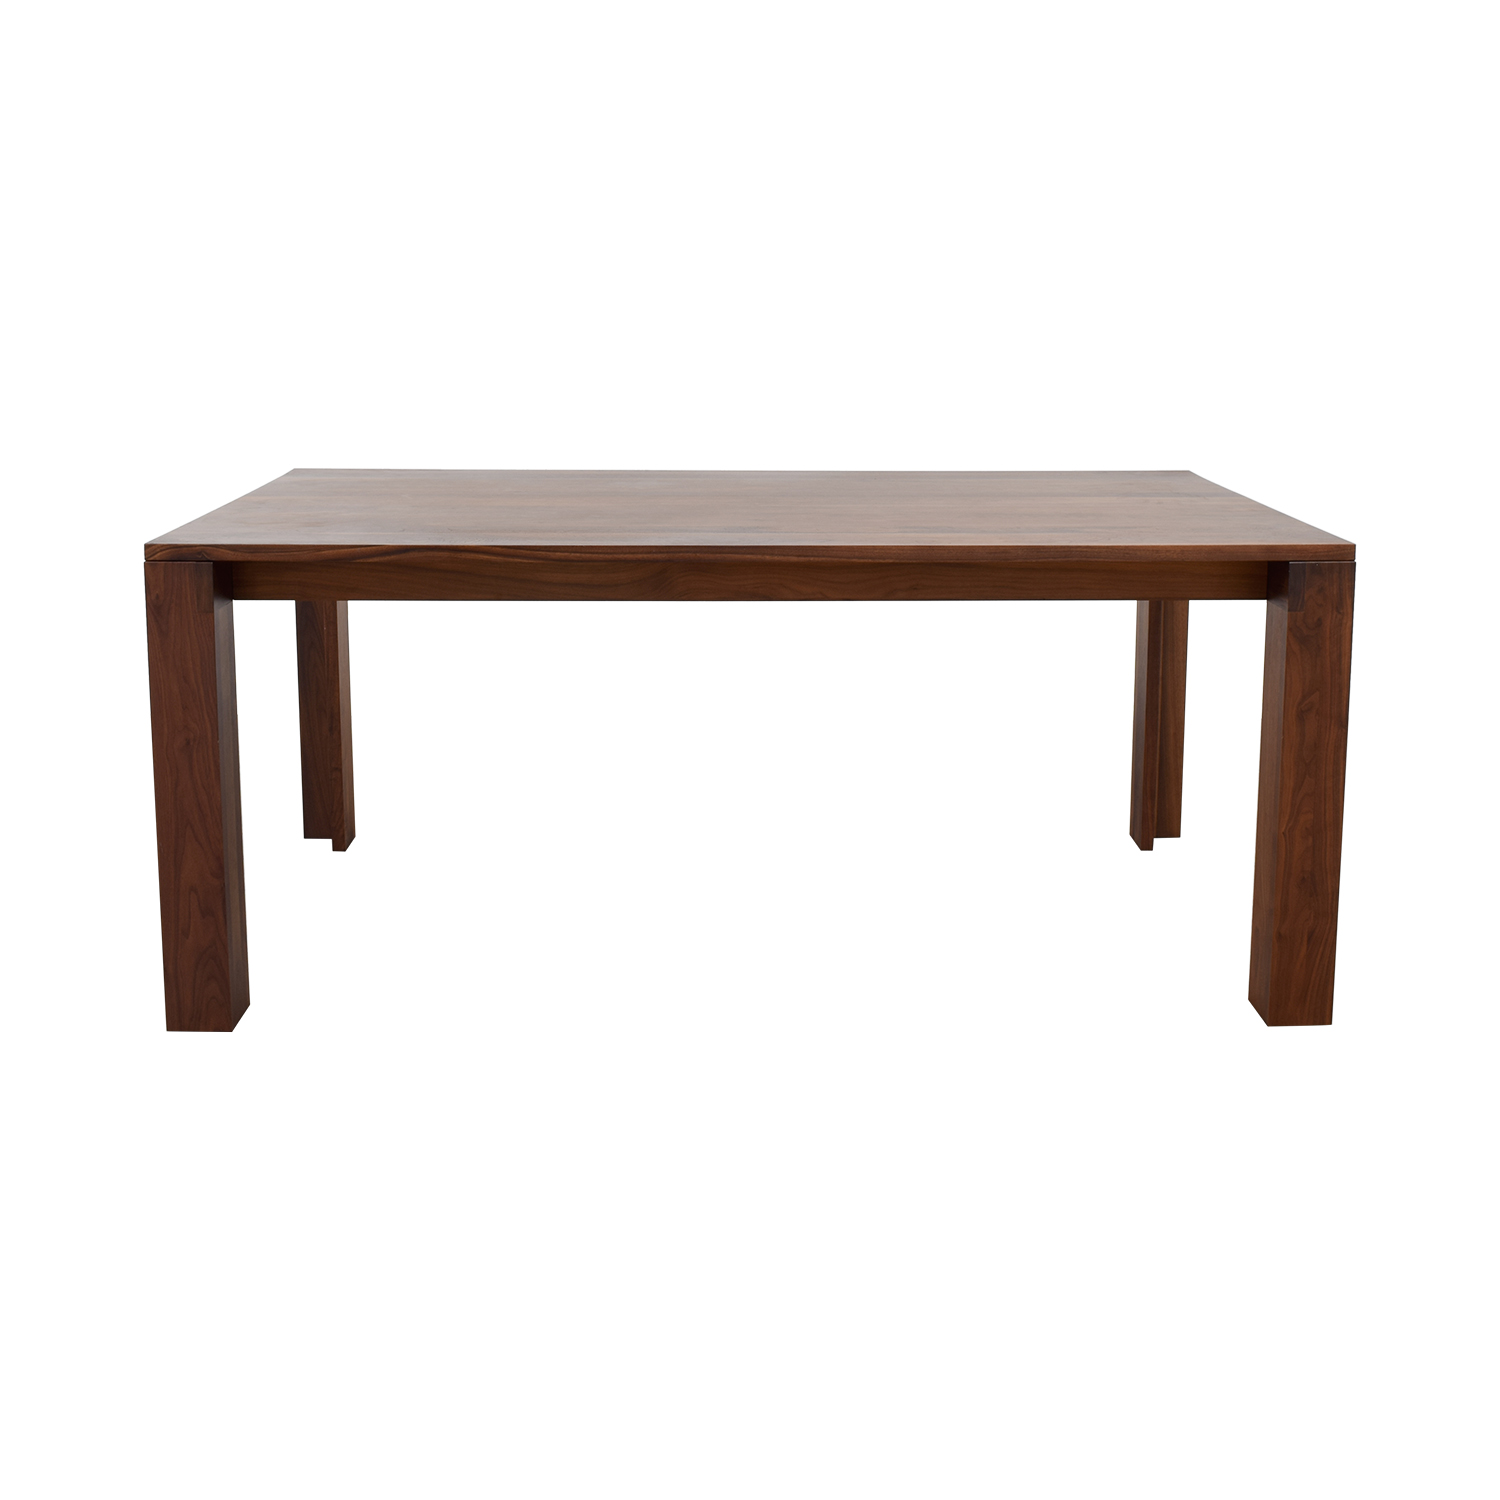 buy DWR Solid Walnut Dining Table Design Within Reach Tables